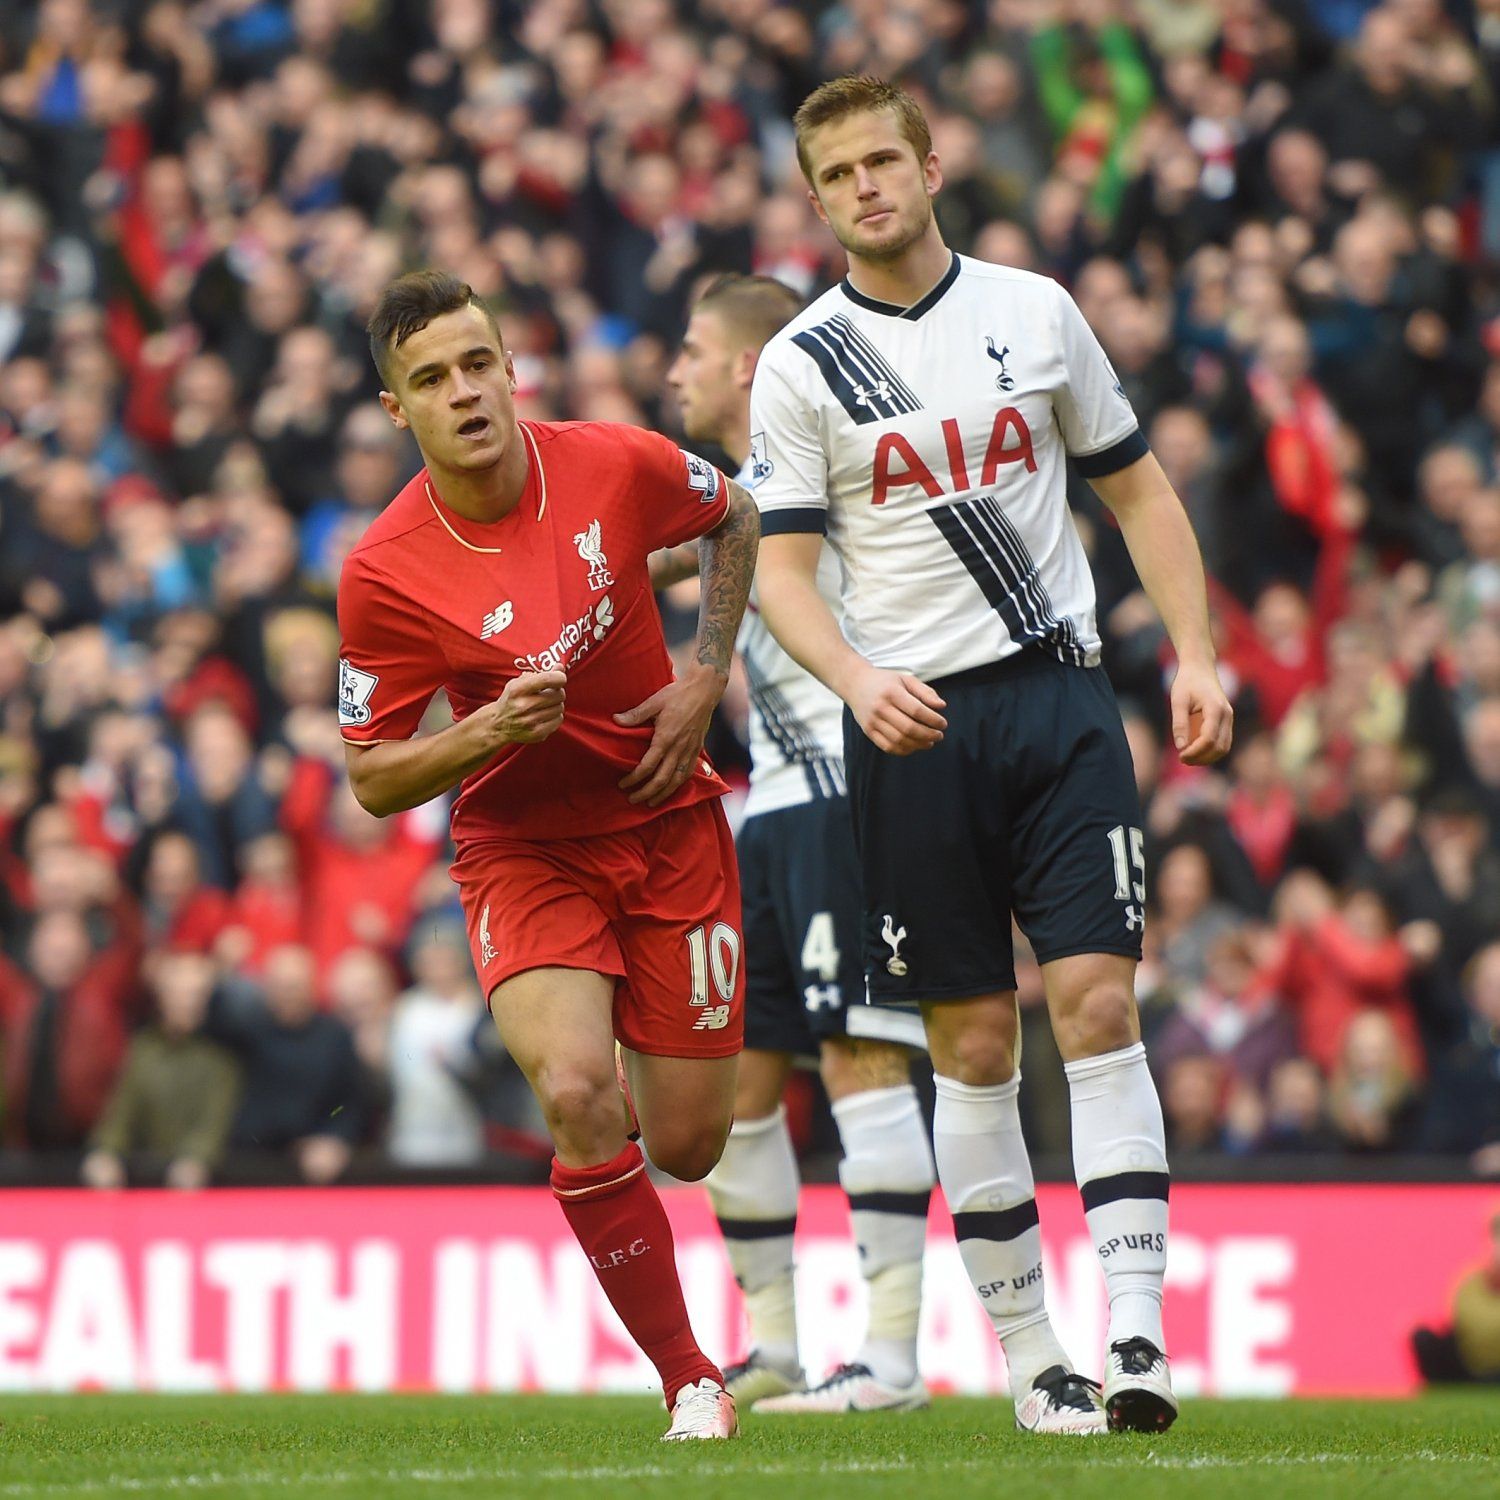 Chelsea Vs Tottenham Score Reaction From 2016 Premier: Liverpool Vs. Tottenham: Score, Reaction From 2016 Premier